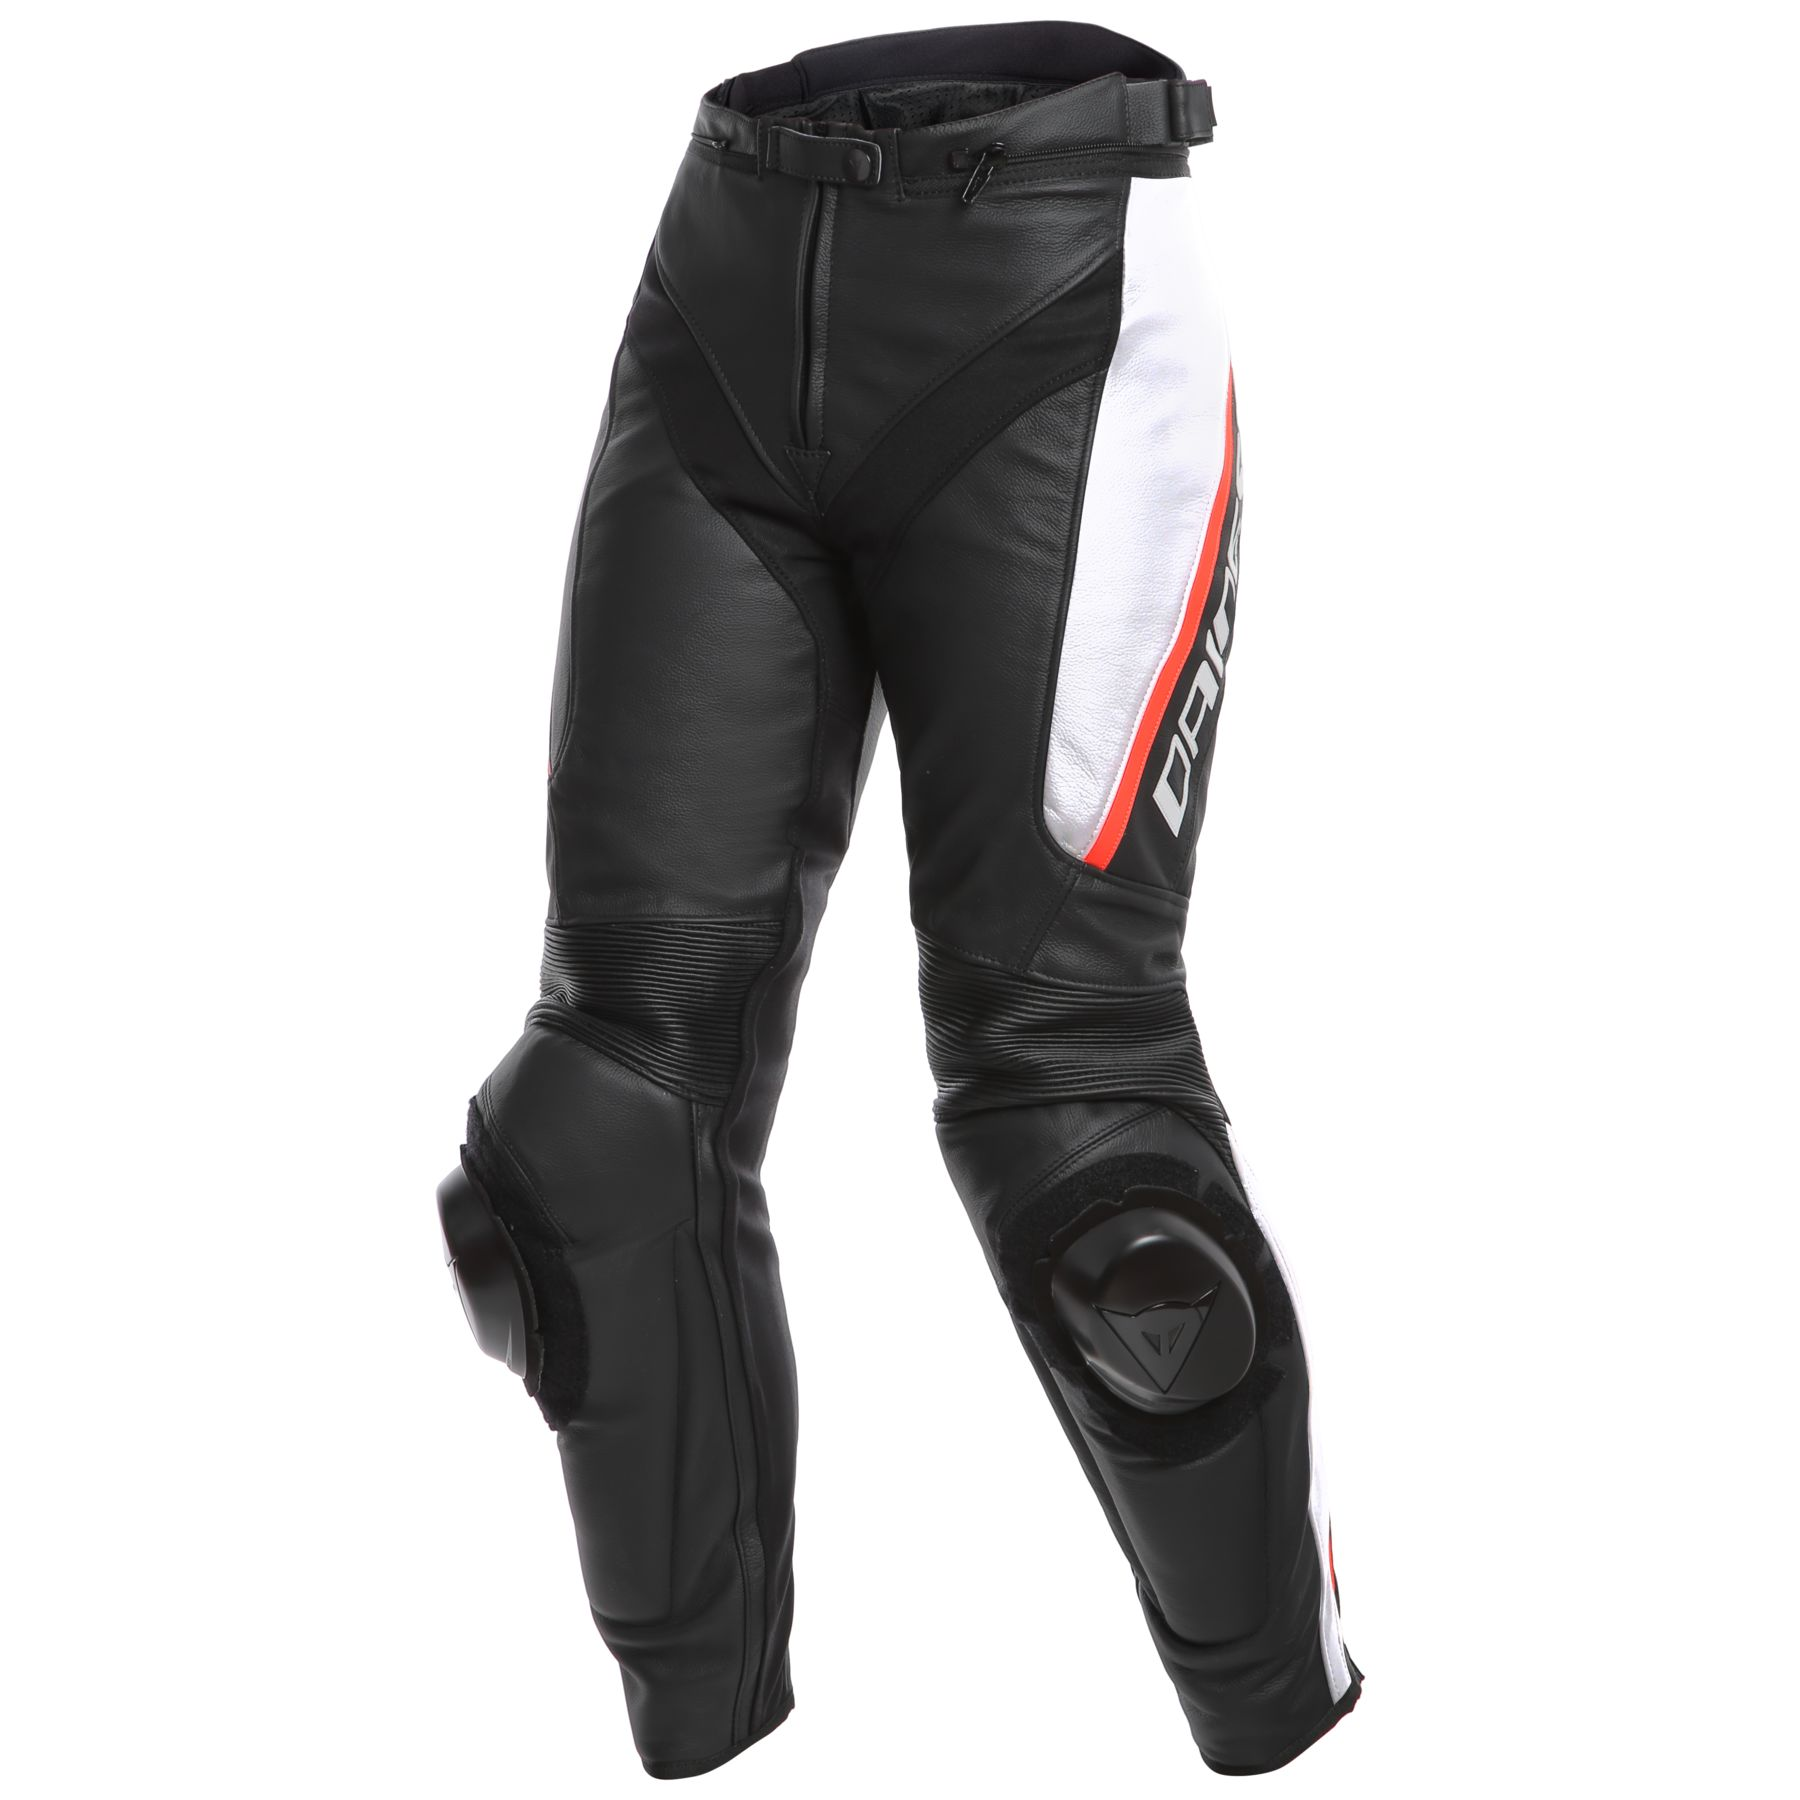 Dainese Delta 3 Womens Leather Motorcycle Pants Black/White/Red 40 Euro